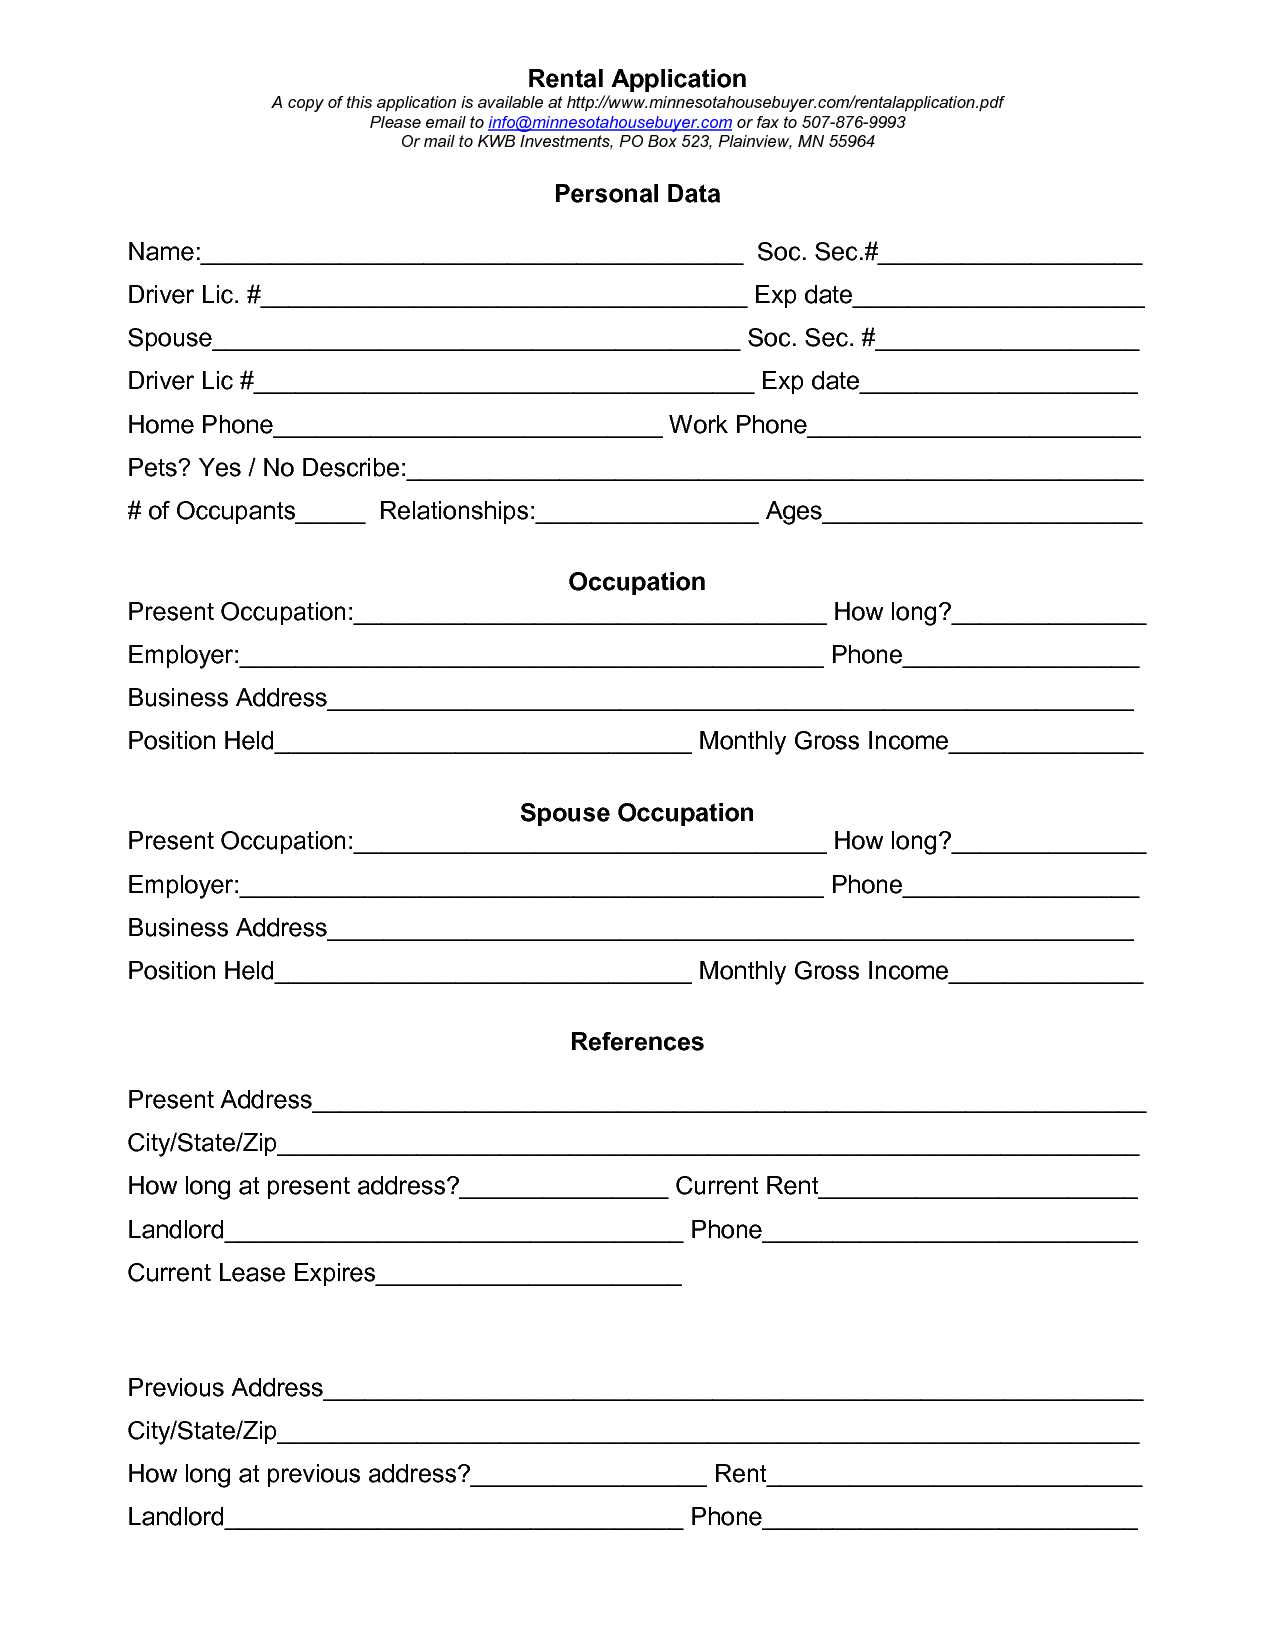 Free Personal Loangreement Form Pdf Inspirational Business - Free Printable Business Credit Application Form